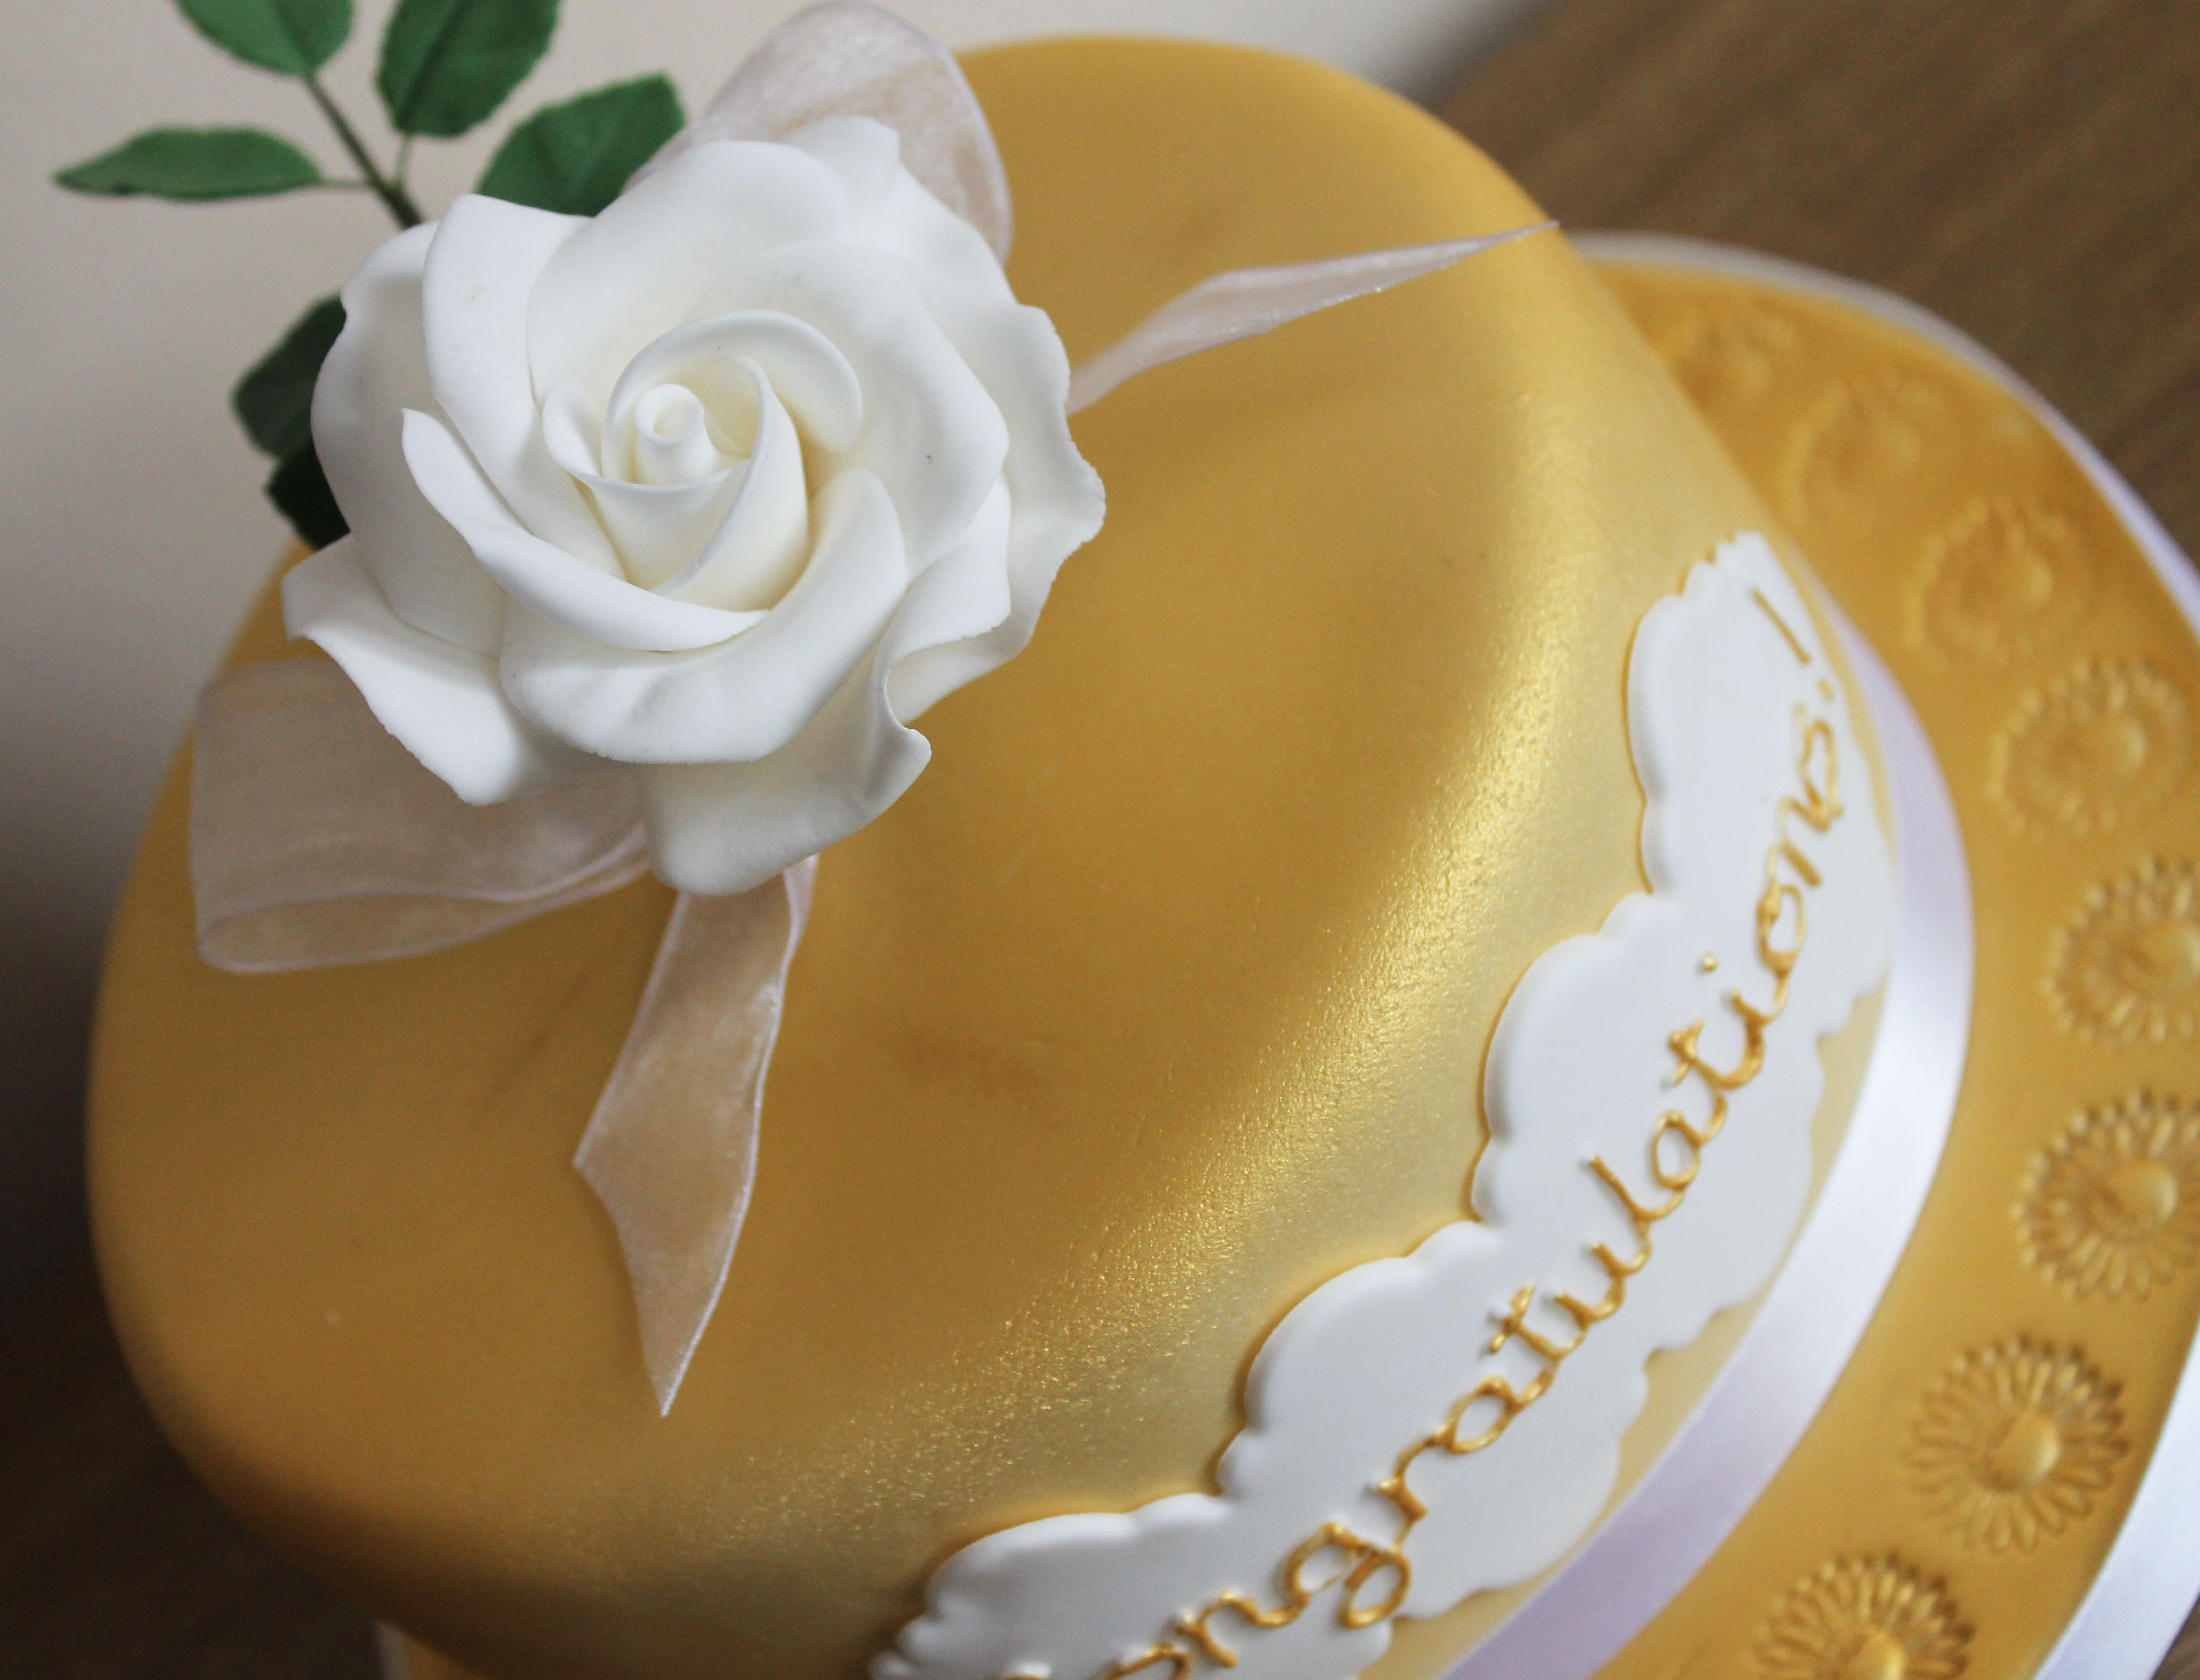 A cake for Gold Chelsea florist winners